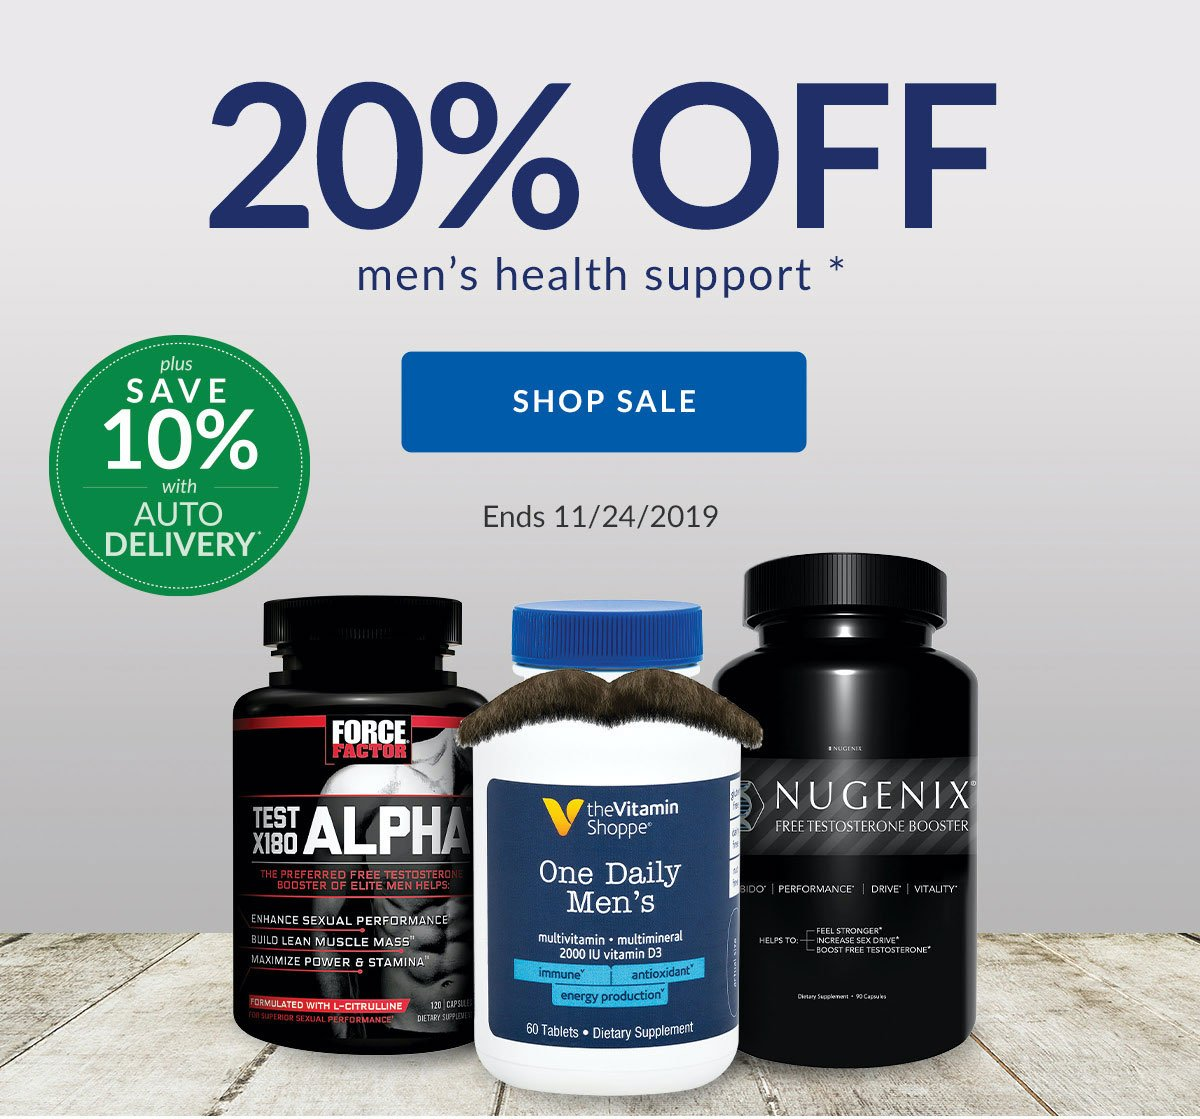 20% OFF men's health support * | SHOP SALE | Ends 11/24/2019 | plus SAVE 10% with AUTO DELIVERY